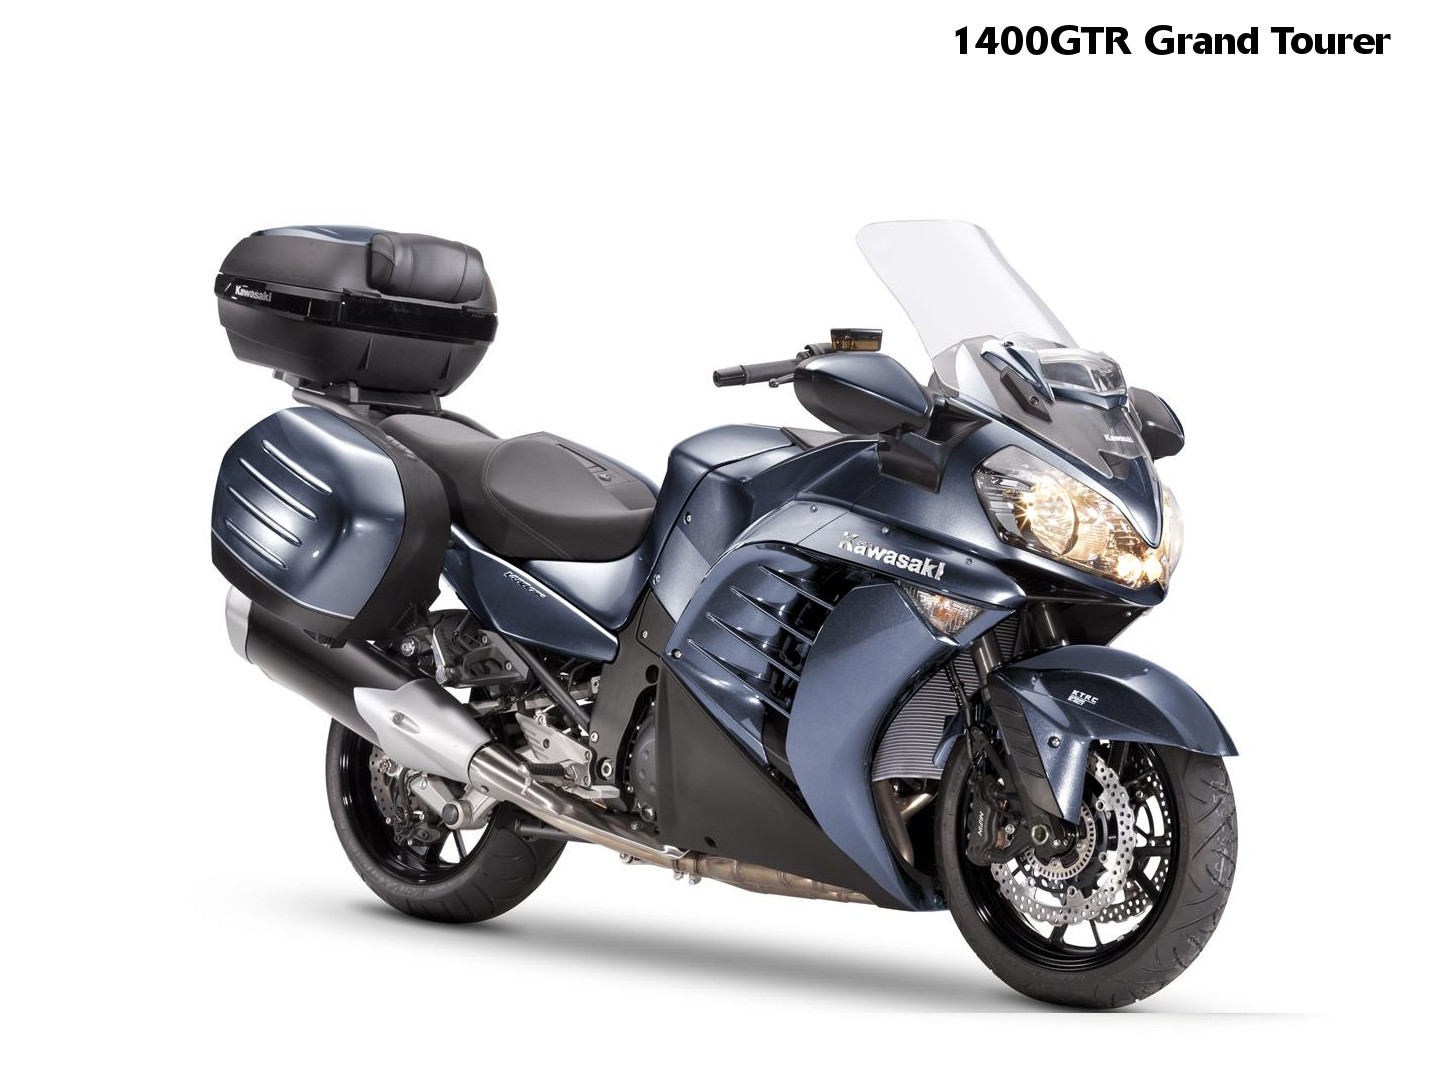 kawasaki gtr 1400 all technical data of the model gtr. Black Bedroom Furniture Sets. Home Design Ideas